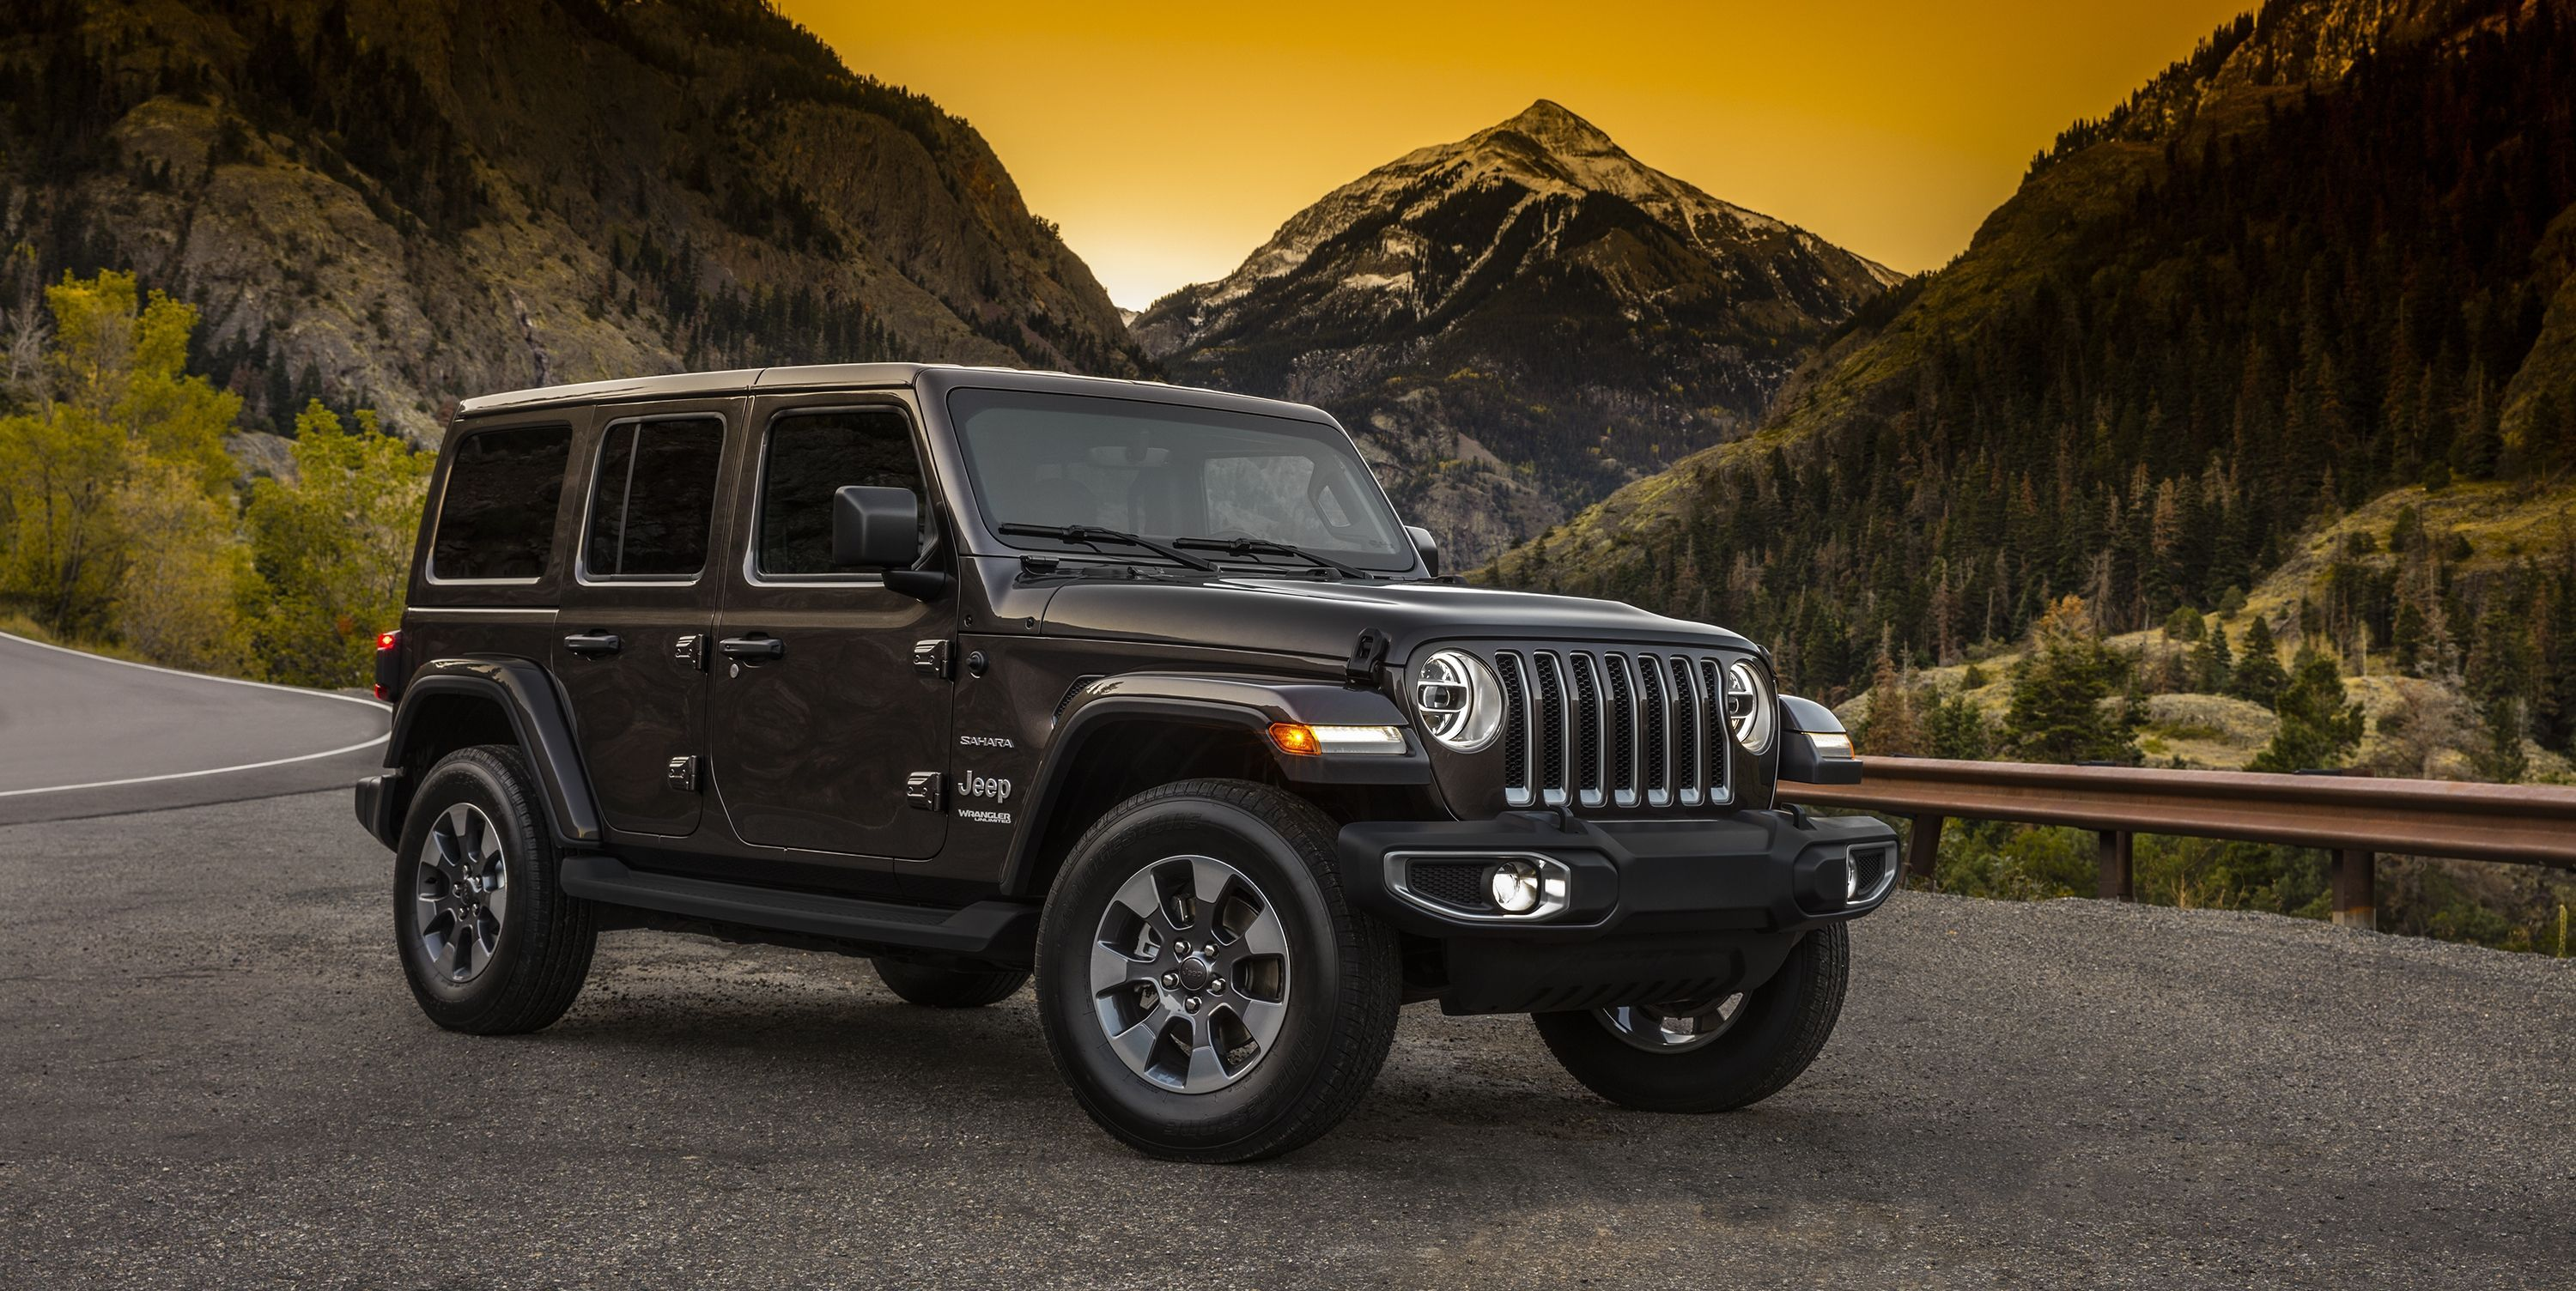 2019 Jeep Wrangler Pickup News s Price & Release Date What